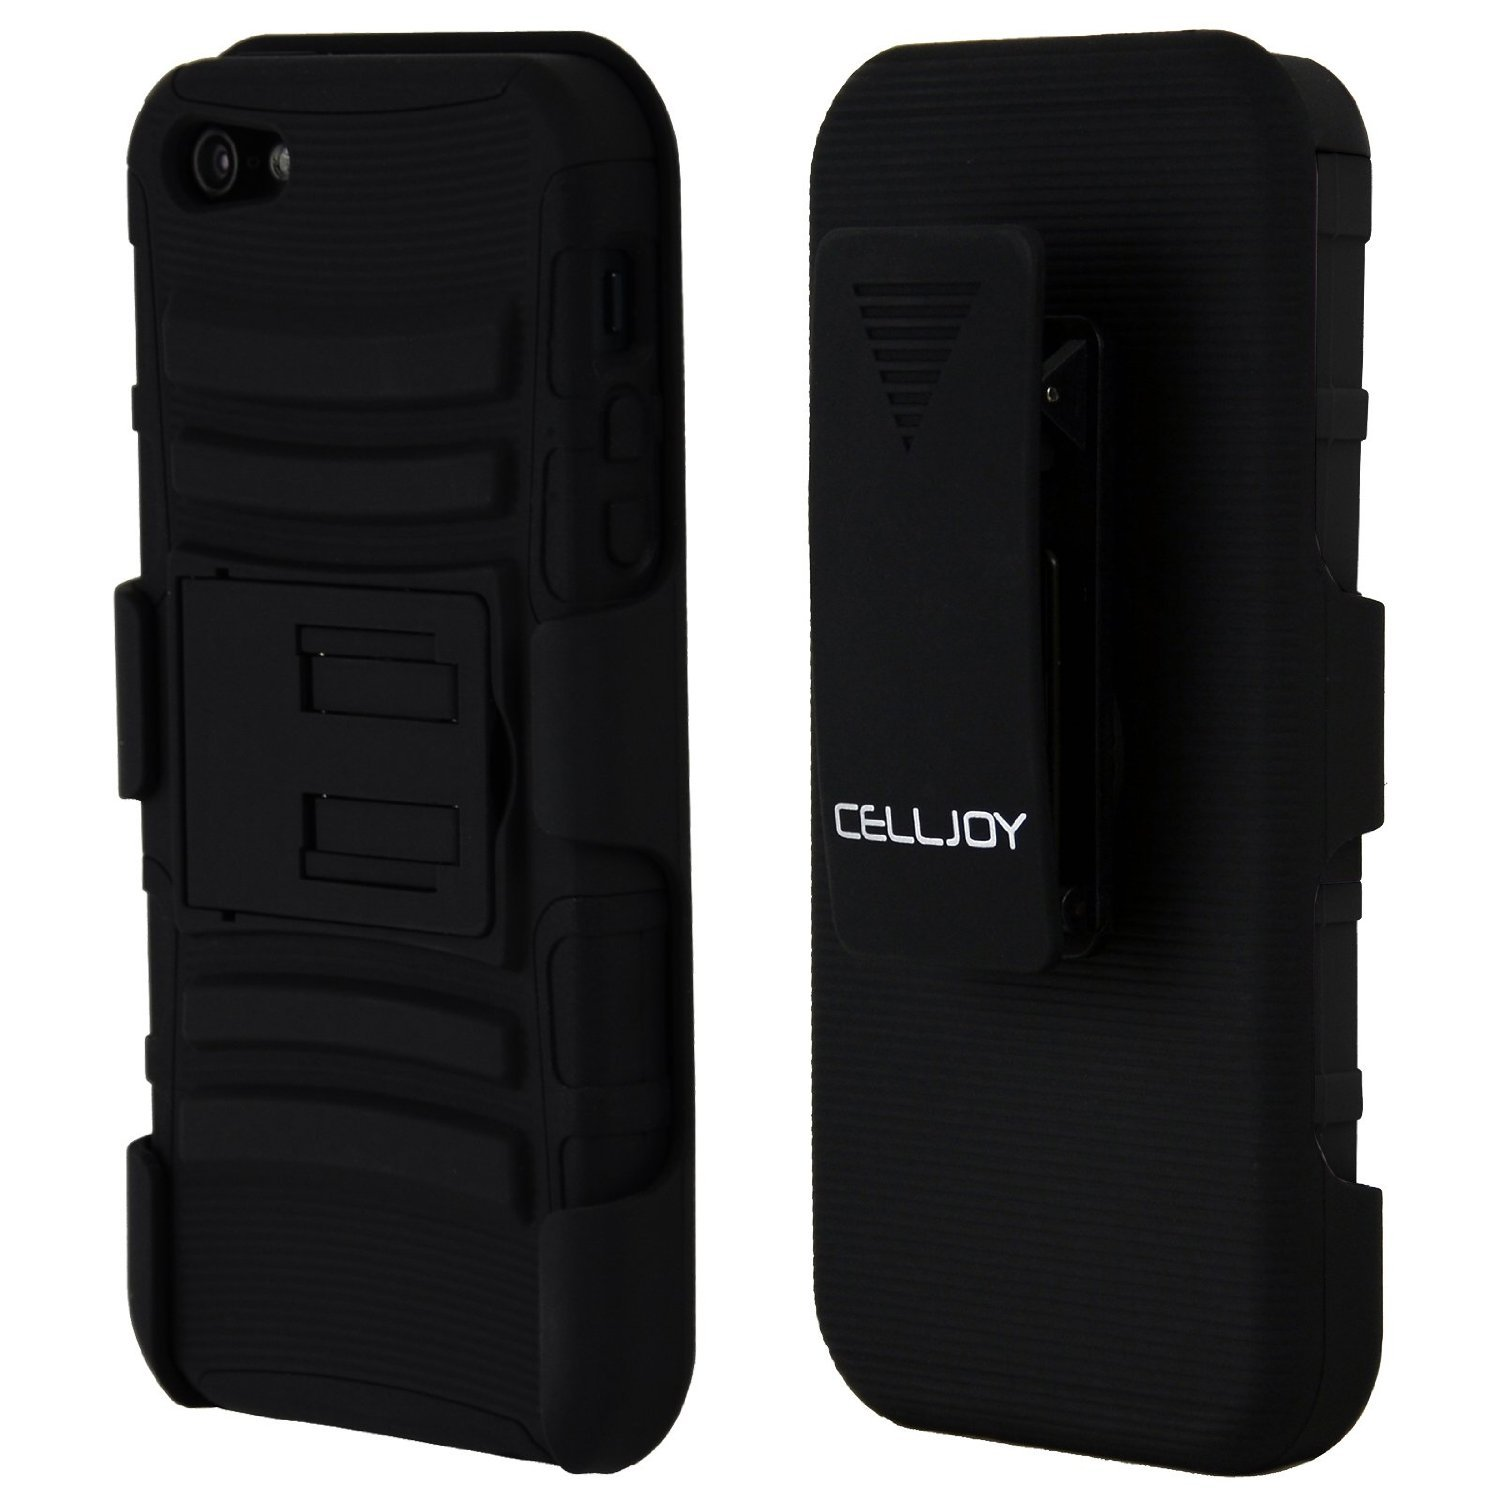 CellJoy Tough Rugged Layered Extreme Hybrid Belt Clip Holster Case for iPhone 5 (Stealth Black)